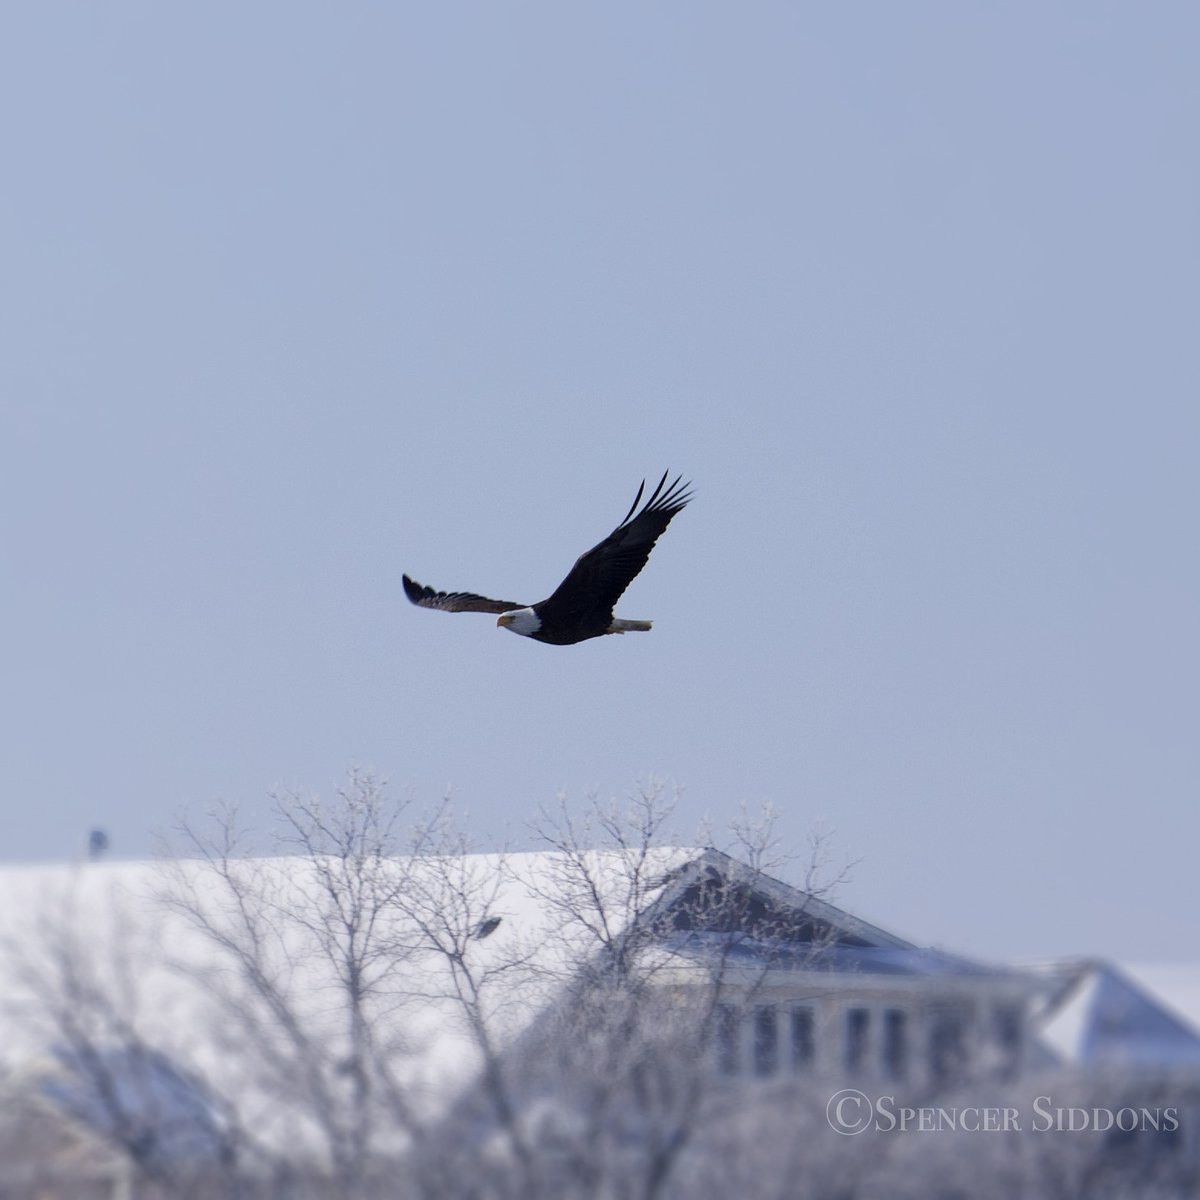 Bald eagles were out in force this winter. Especially in West Lafayette where at times there would be ~15 in sight along the Wabash River. Their ability to tolerate major habitat destruction/pollution (+ the recovery efforts of humans) is astonishing. #birds #WorldWildlifeDay